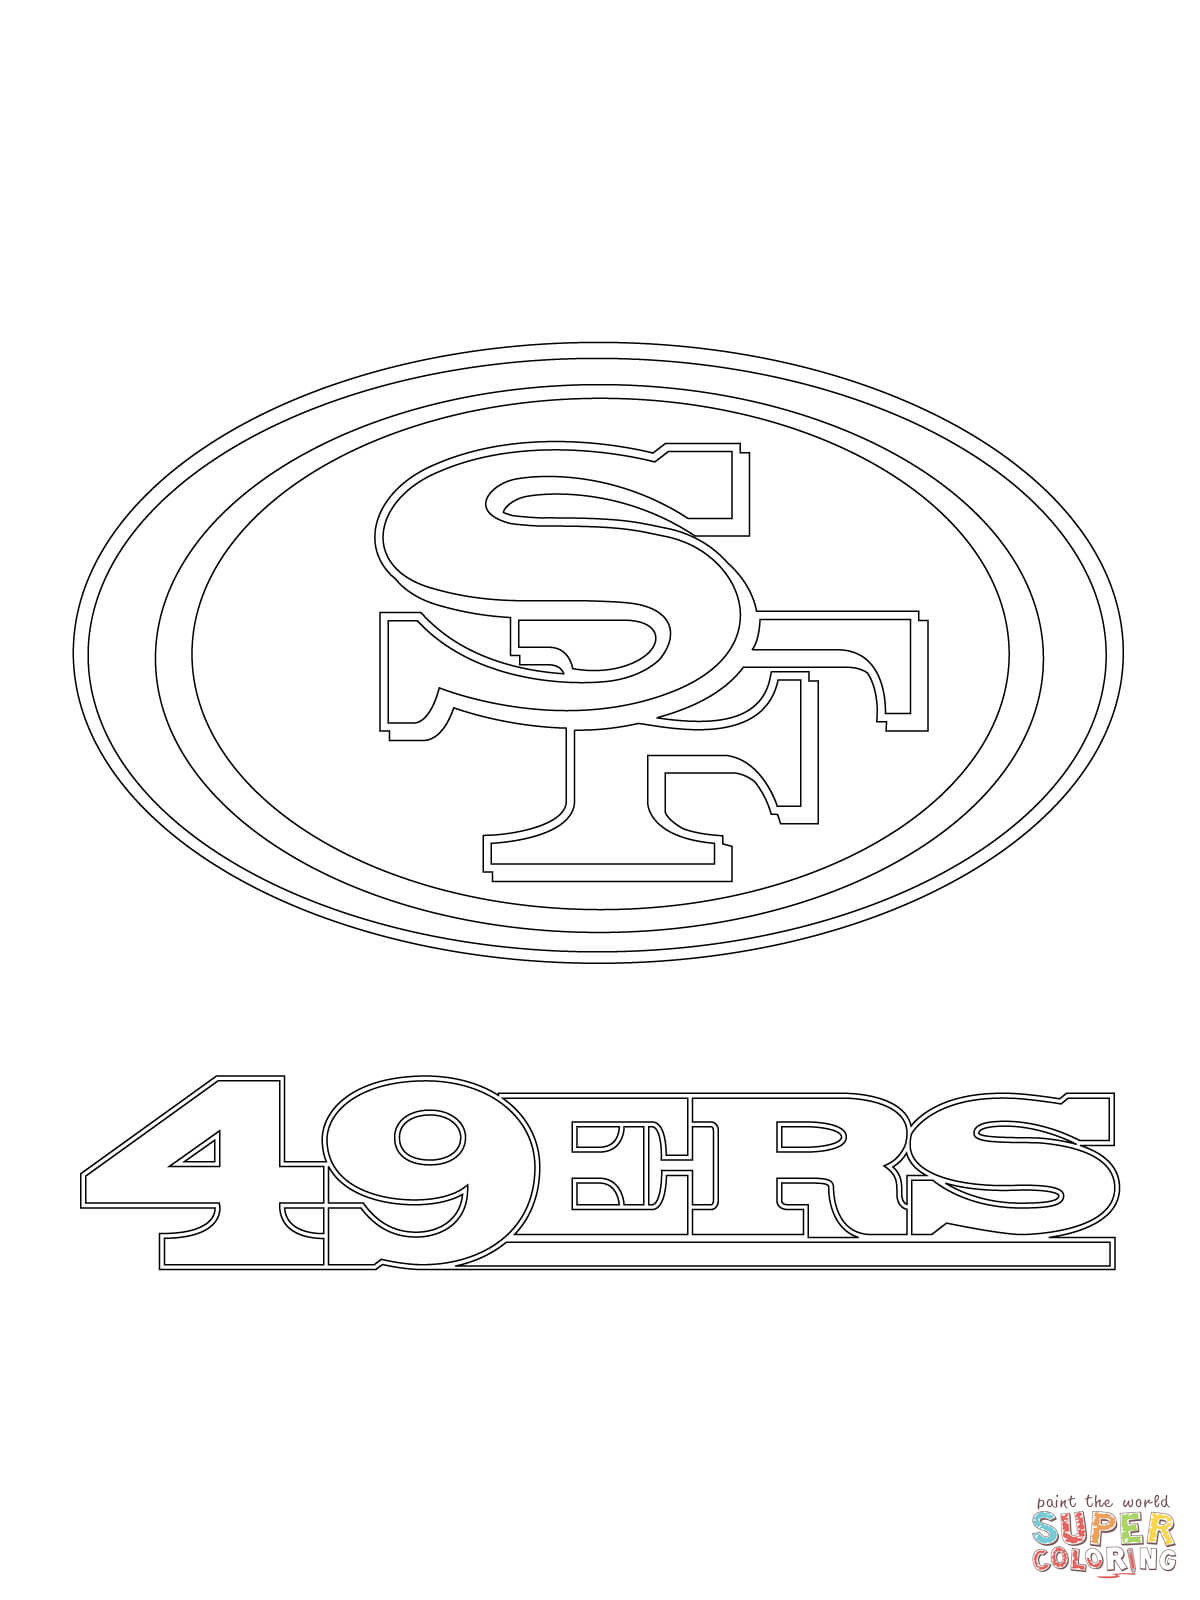 49ers logo coloring pages photo - 1